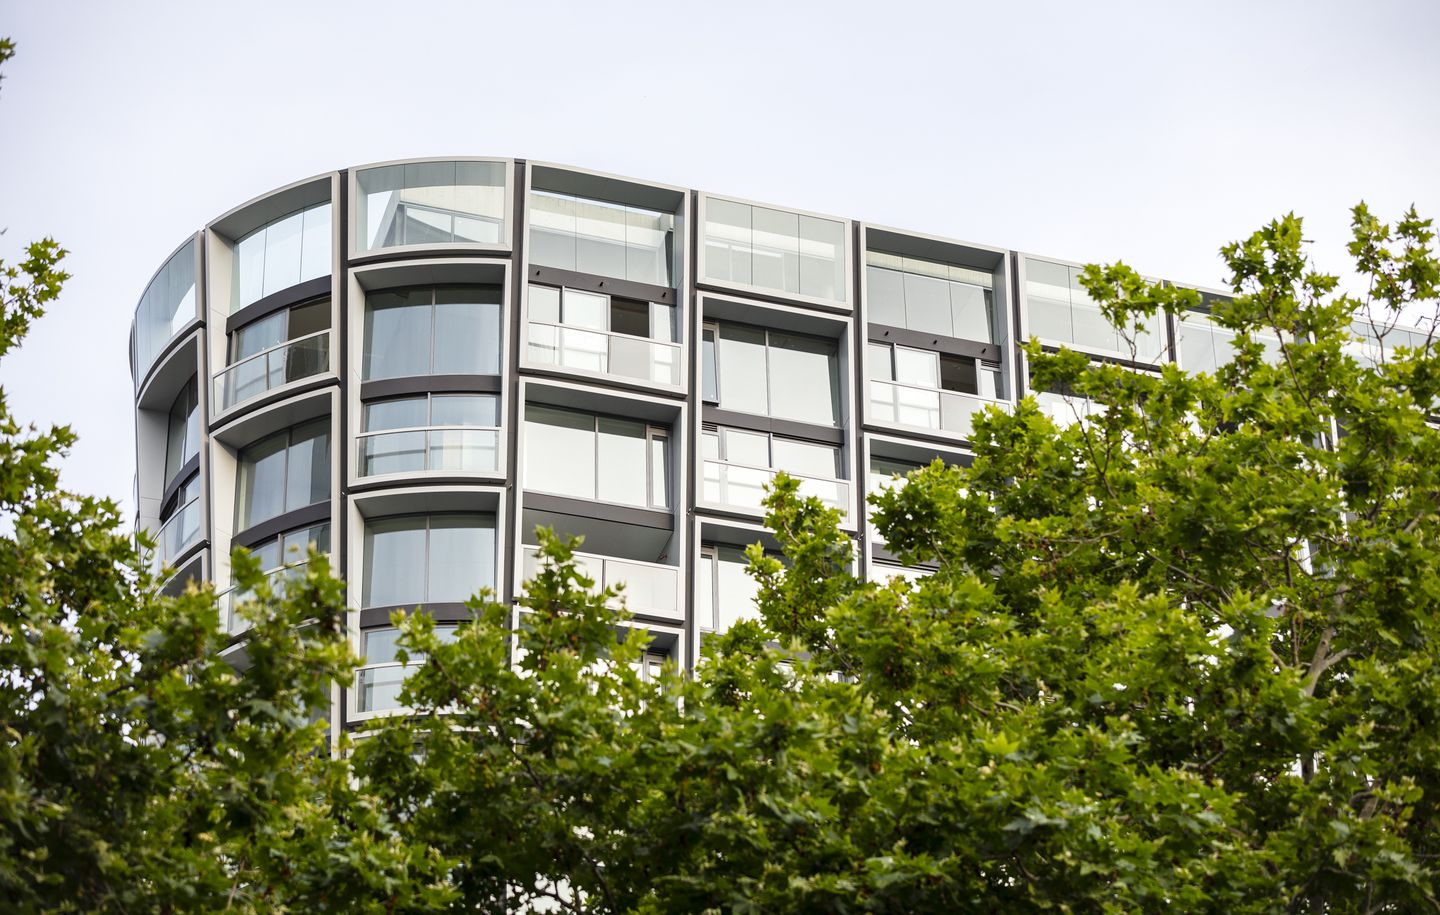 Close up view of Omnia Apartment building behind tree in Potts Point Sydney designed by Durbach Block Jaggers Architects Sydney